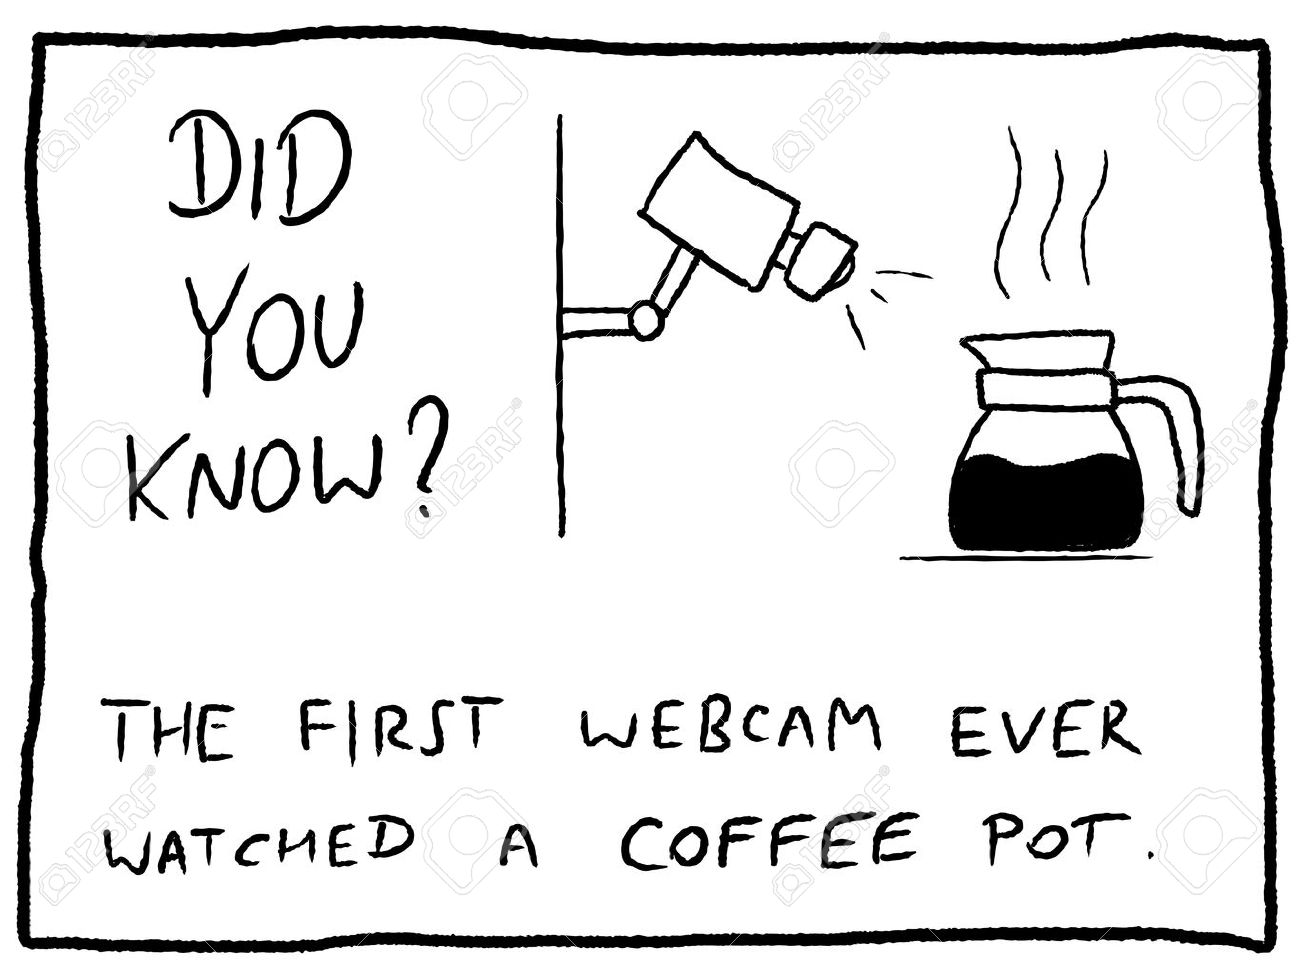 Internet facts about first webcam history - fun trivia cartoon doodle concept. Newspaper funny comic fact. - 64860616